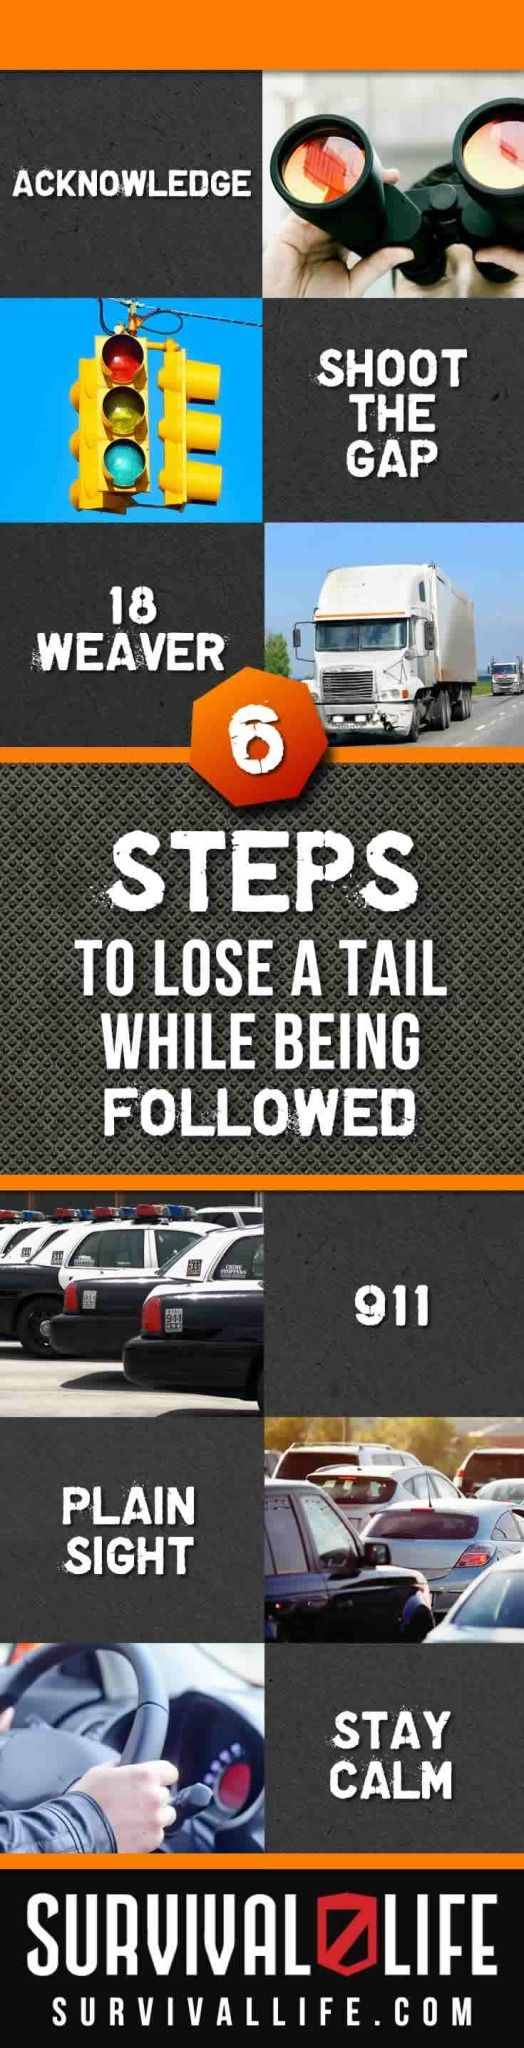 How to Lose a Tail When Being Followed | Emergency Preparedness Tips & Skills For Self Defense By Survival Life http://survivallife.com/2014/10/02/being-followed/